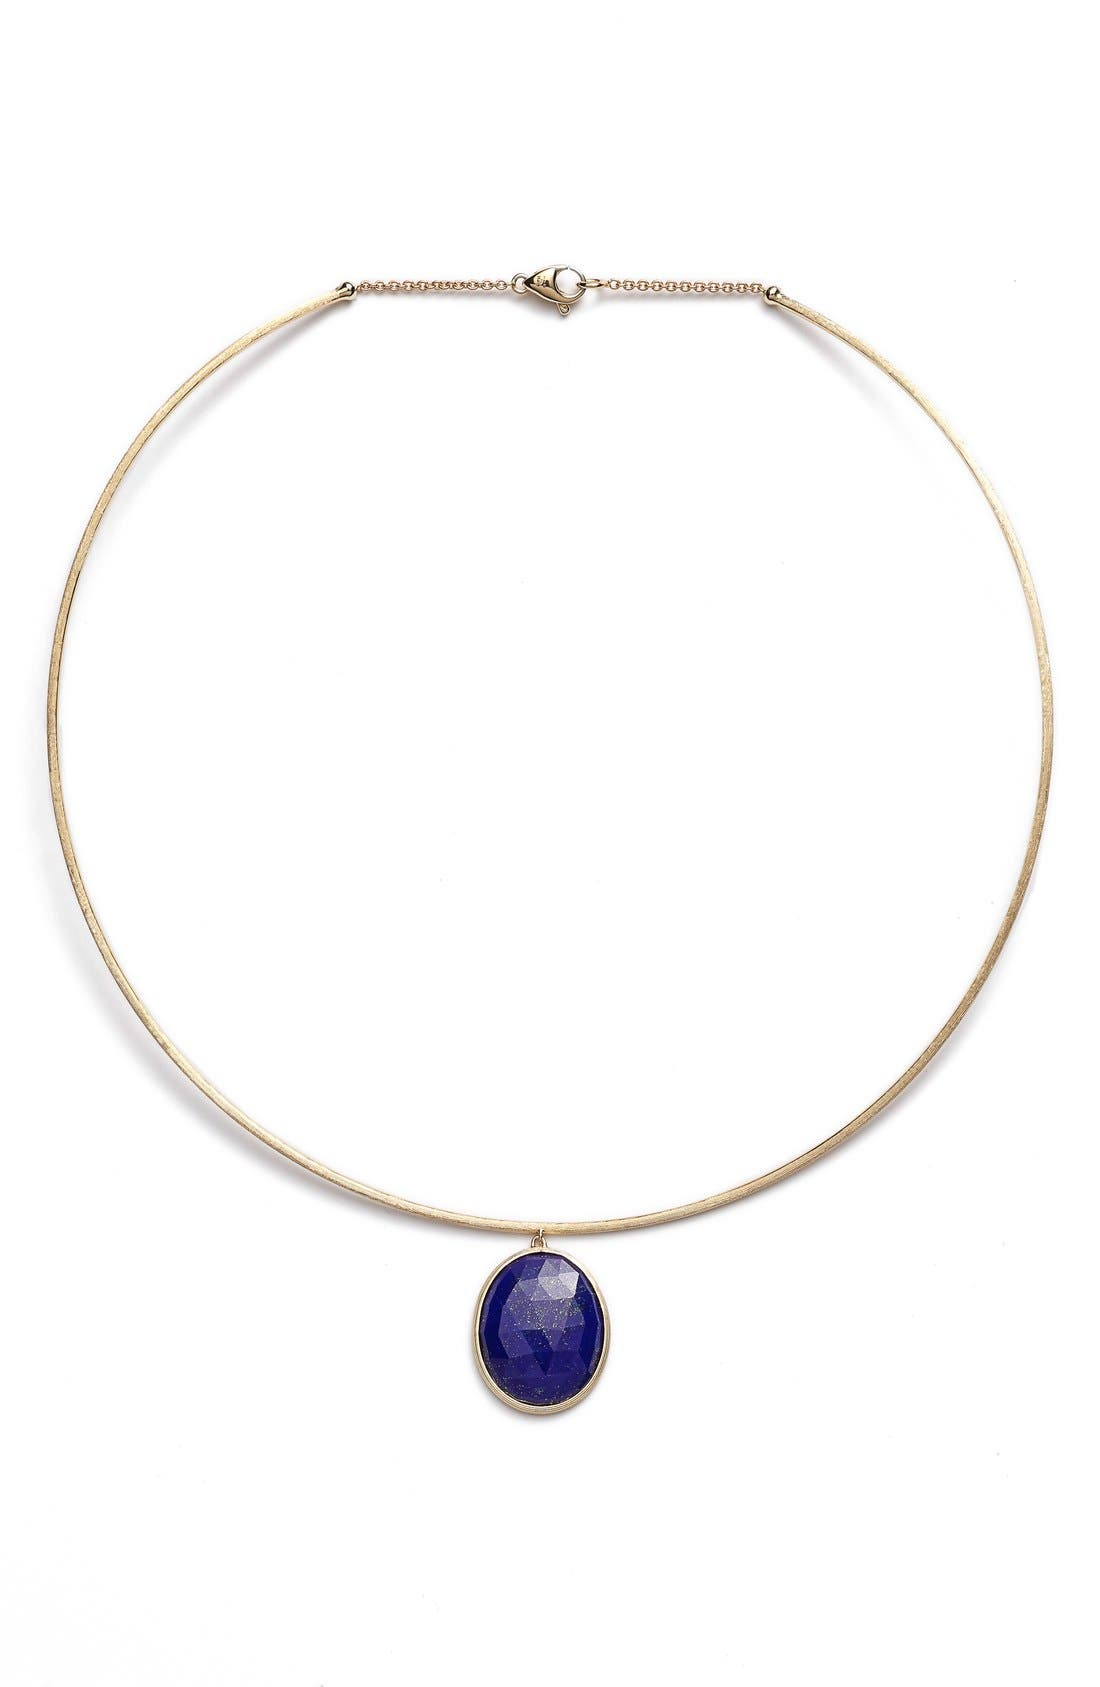 'Lunaria' Lapis Collar Necklace,                         Main,                         color, YELLOW GOLD/ LAPIS